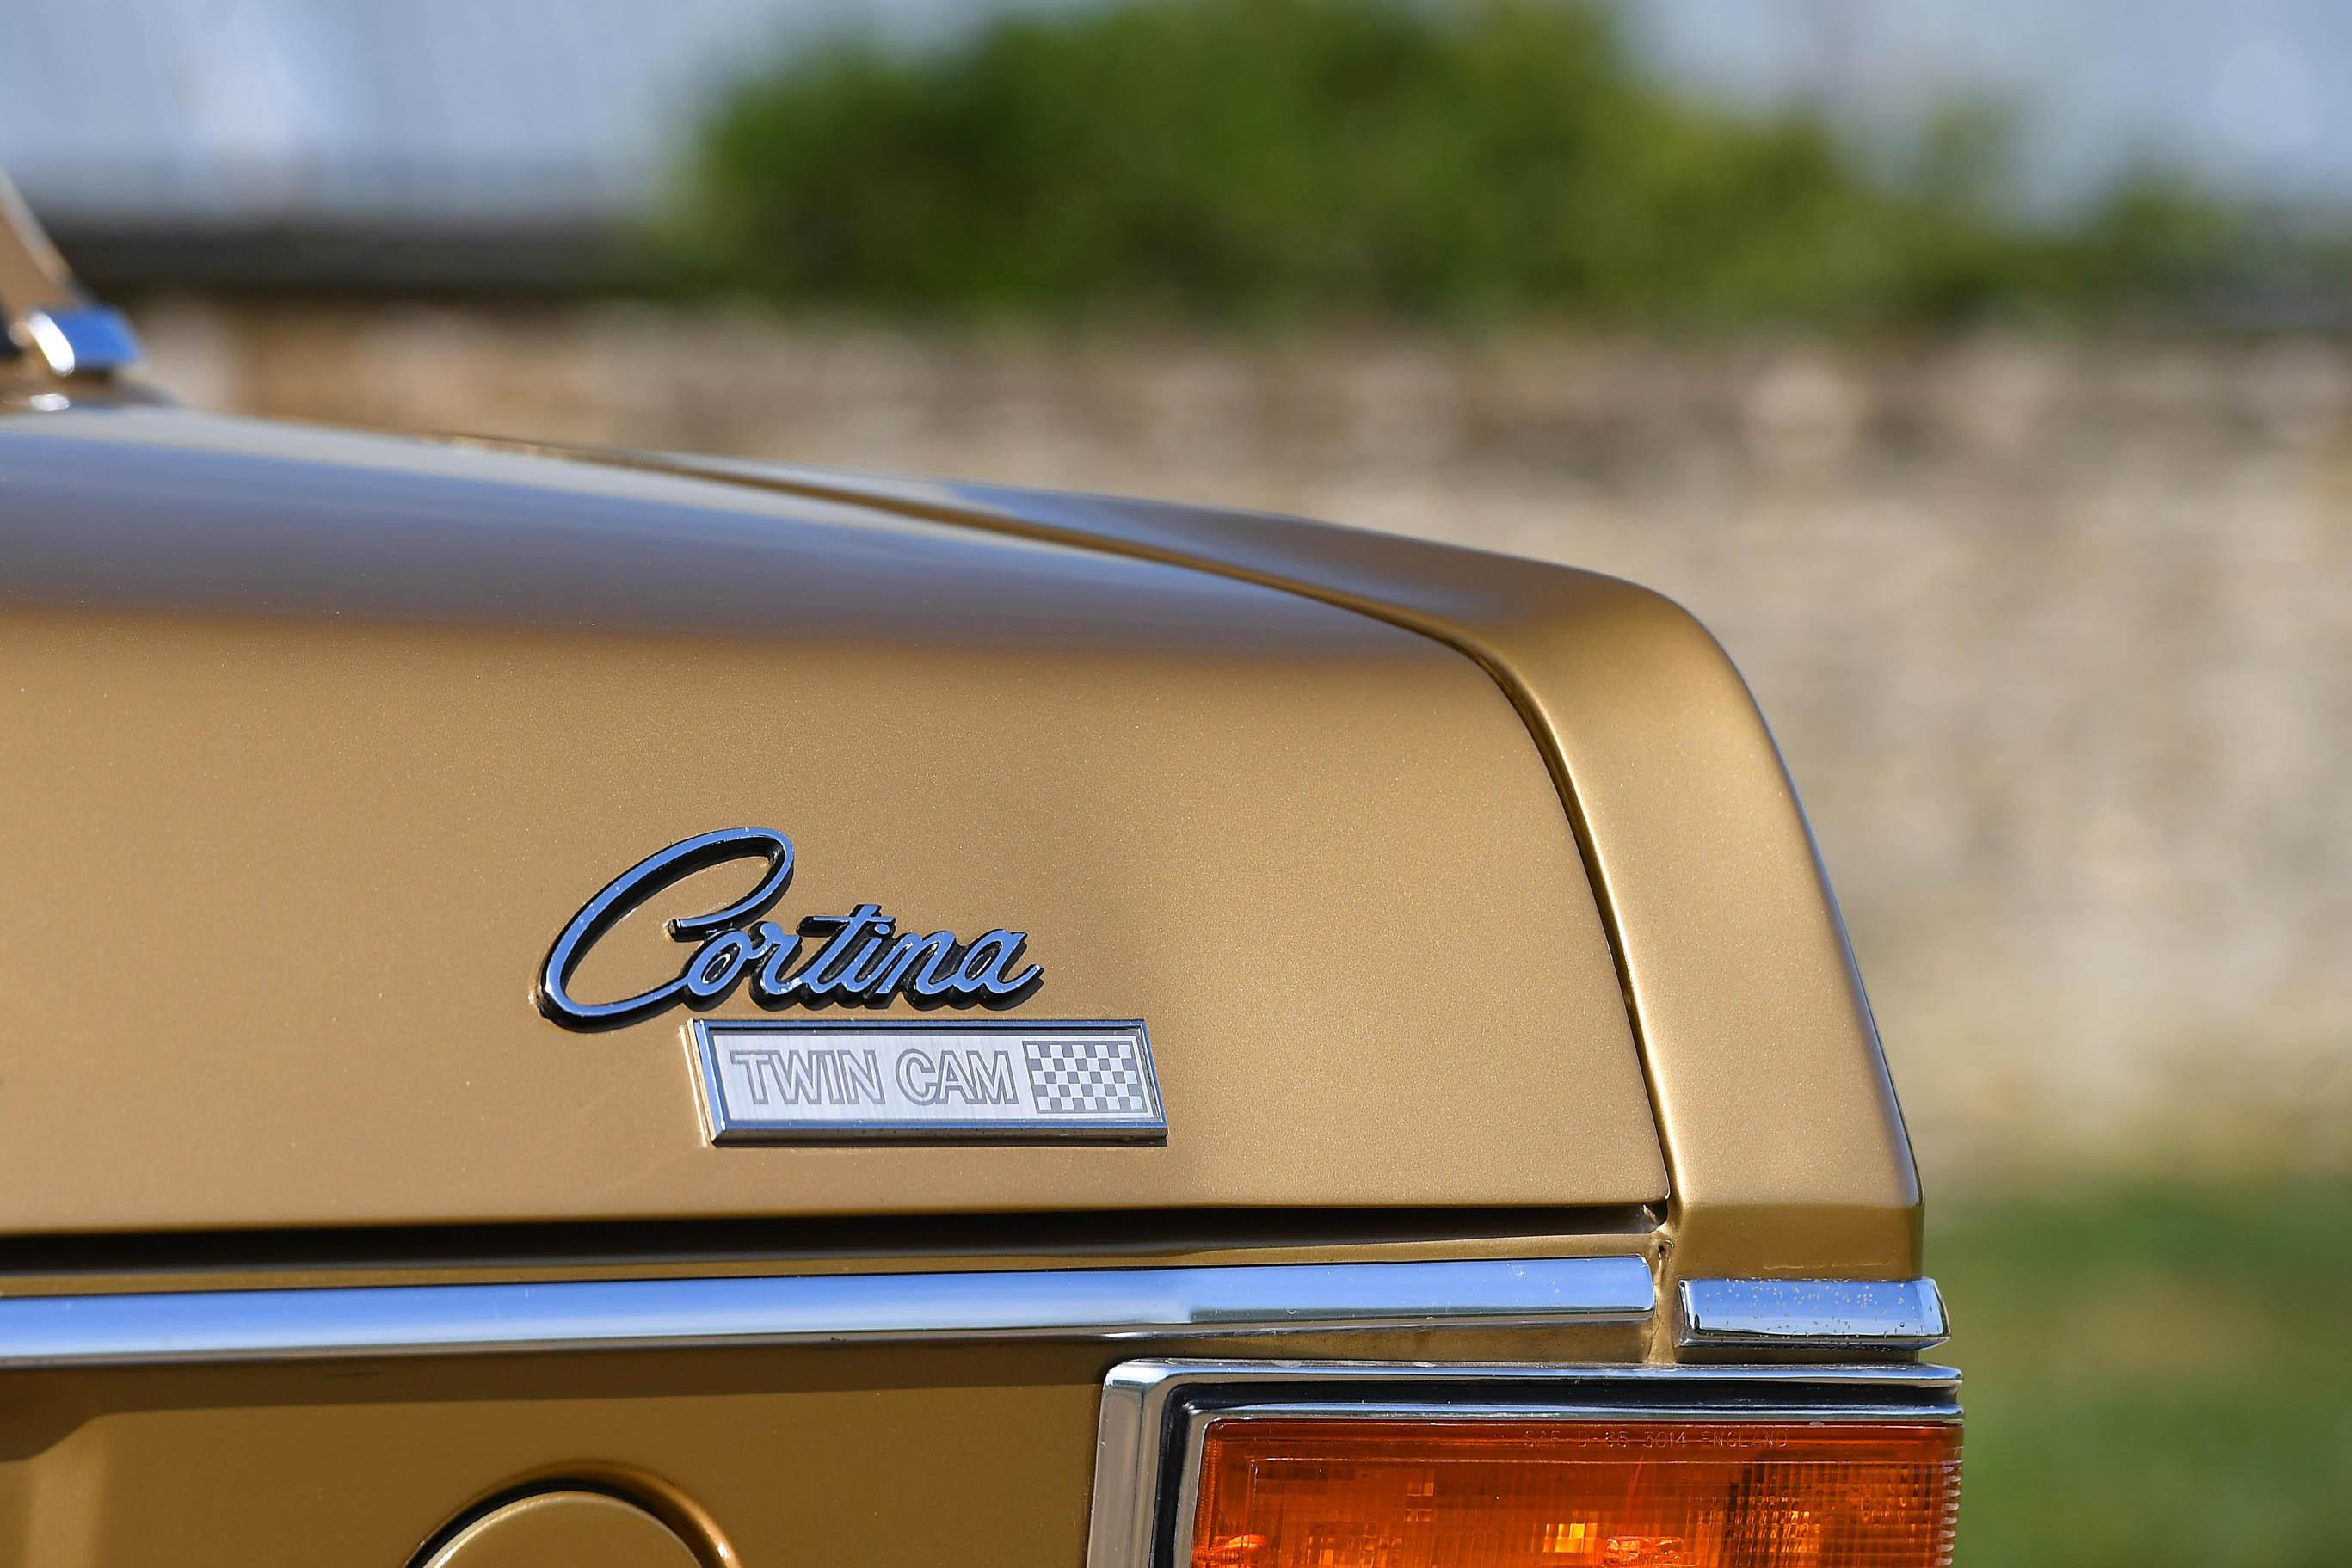 Ford Lotus Cortinas